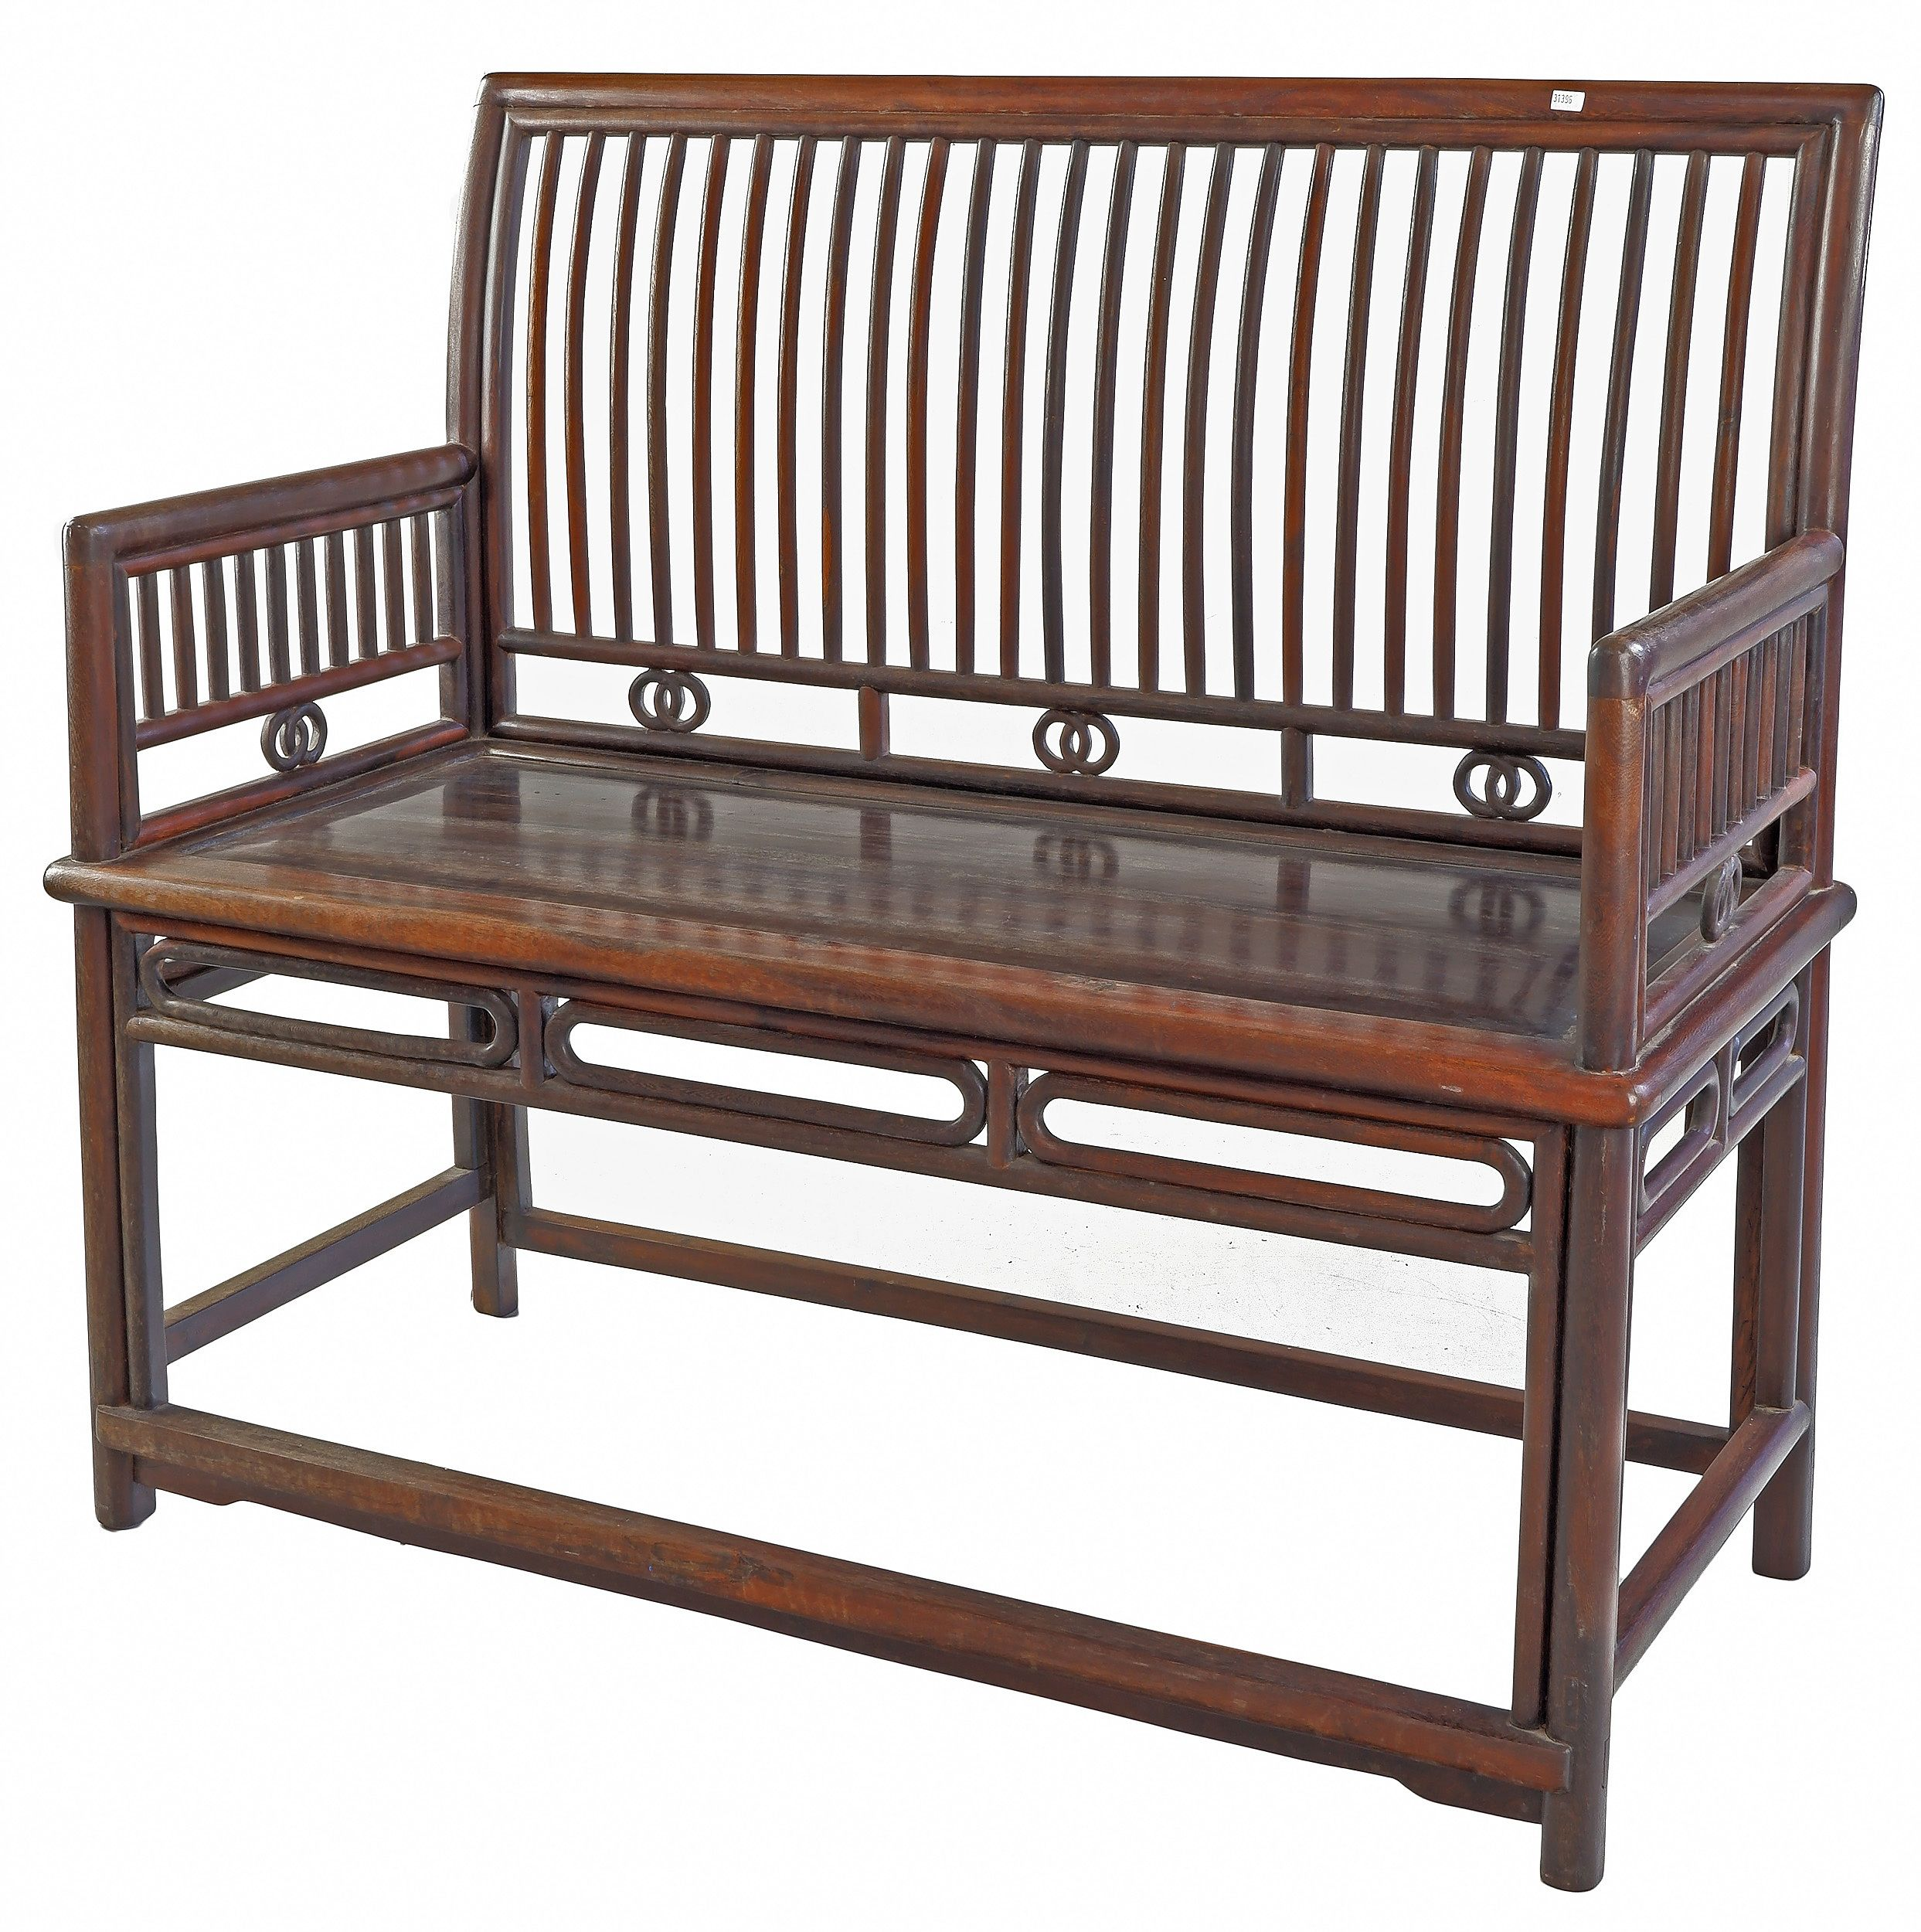 'Chinese Hardwood Comb Back Rose (Meigui) Bench, Late Qing or Republic Period'